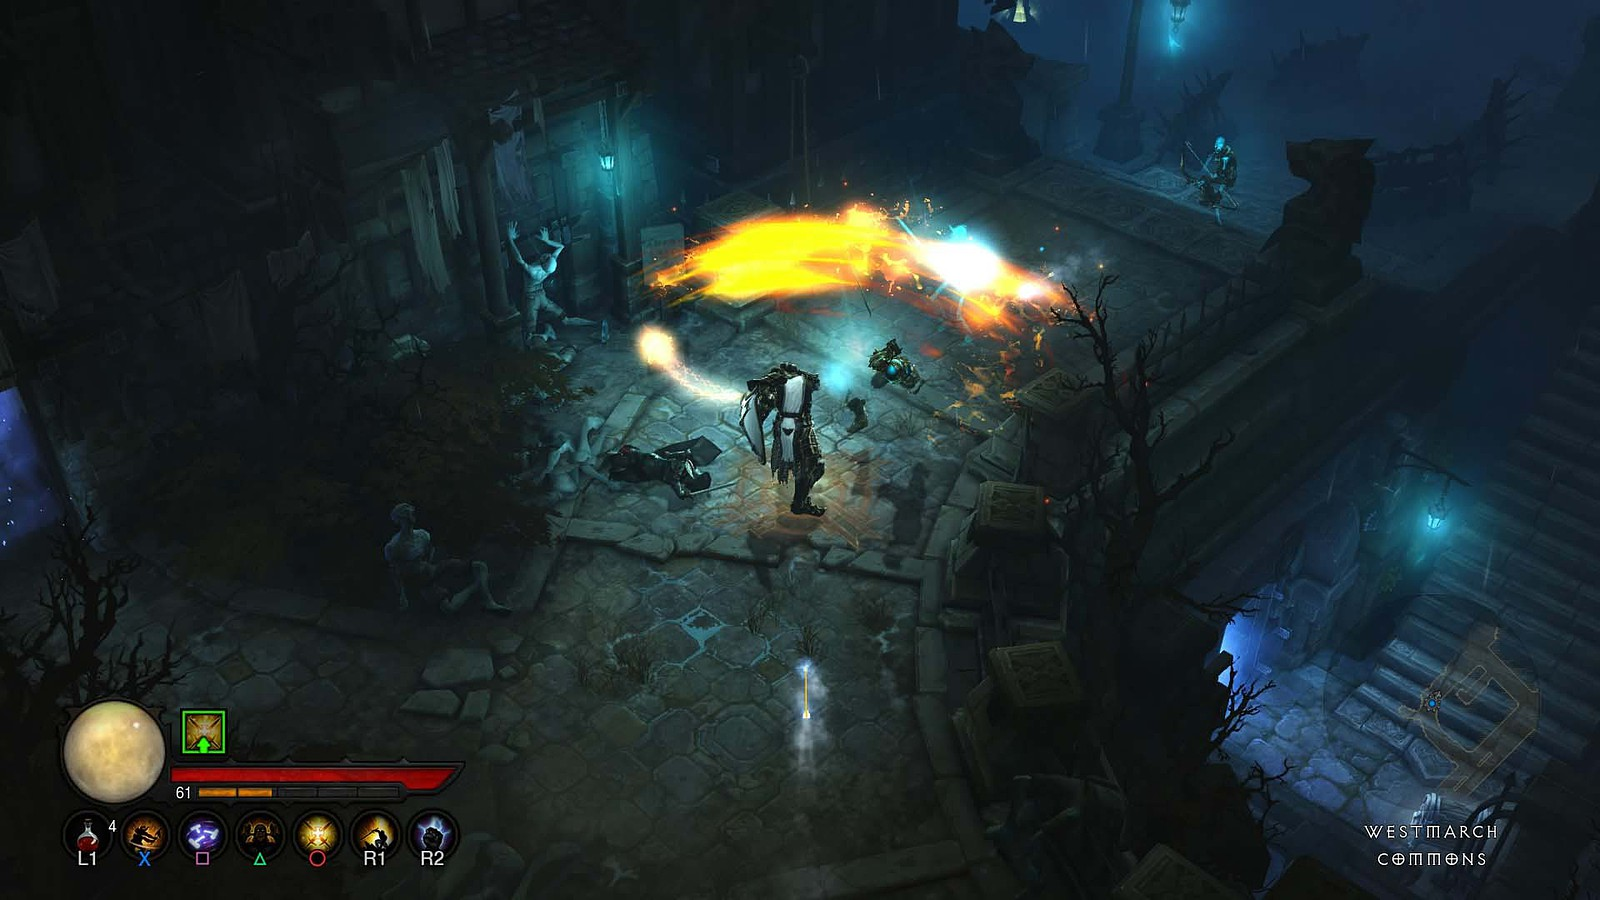 Diablo 3: Ultimate Evil Edition launches Aug. 19 on PS3, PS4, Xbox 360, Xbox One